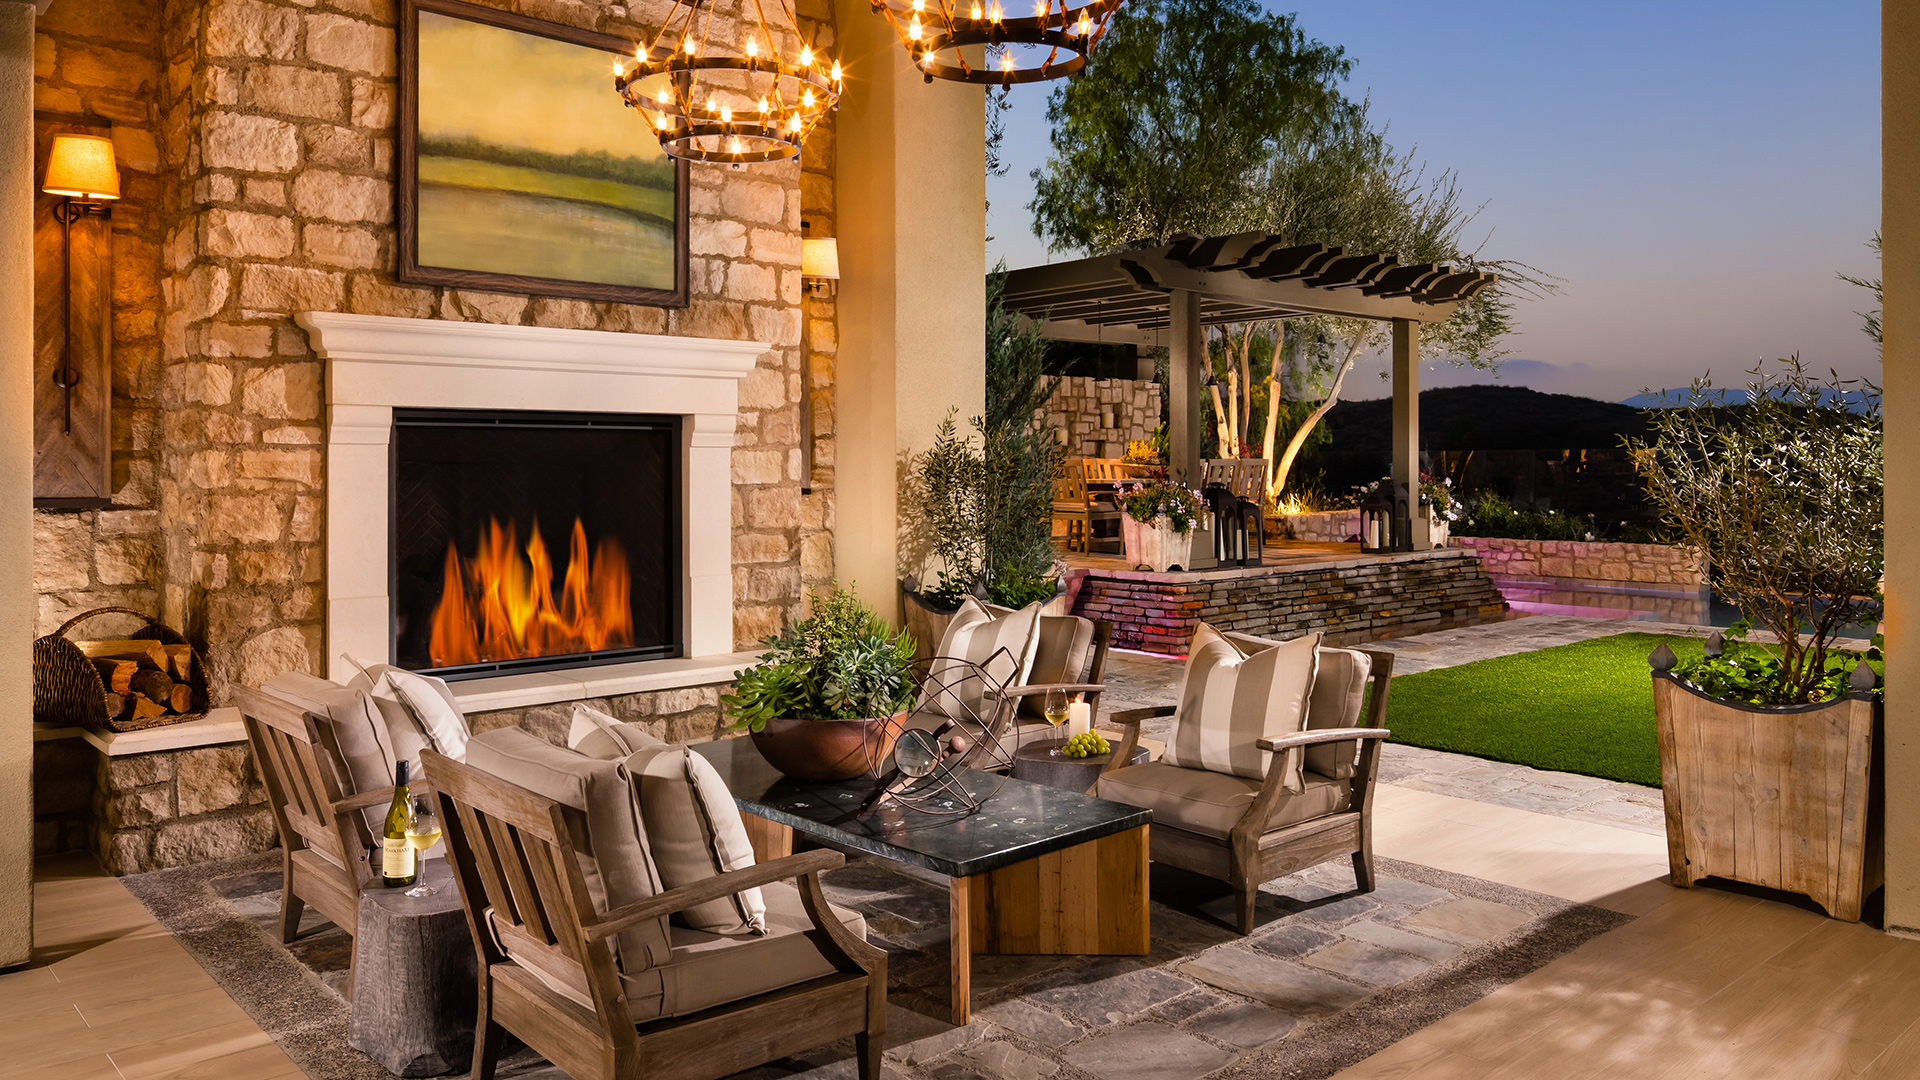 Danville CA New Homes for Sale | Iron Oak at Alamo Creek on Sequoia Outdoor Living id=12955